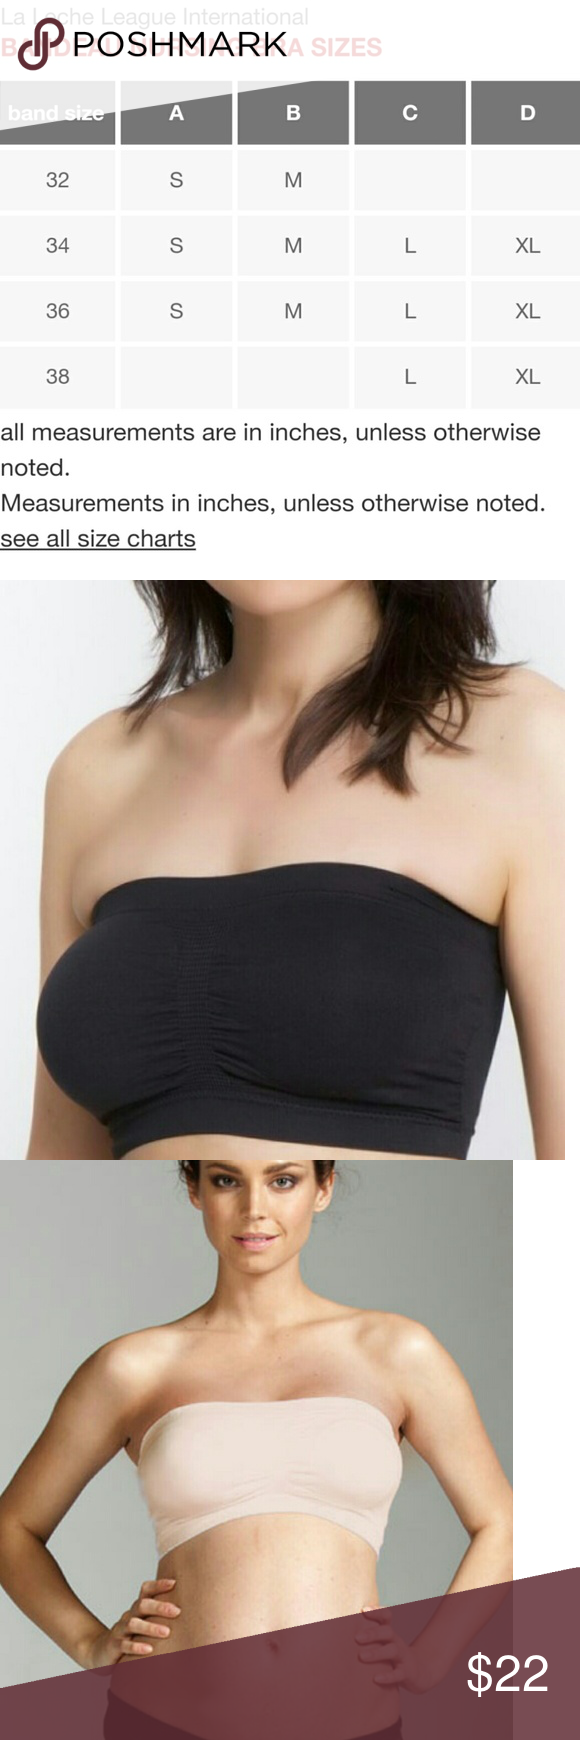 0814bba440949 NEW Nursing Bra Strapless La Leche League?Black S Wear it pregnant or not,  this oh-so - comfortable strapless nursing bra from La Leche League  actually ...